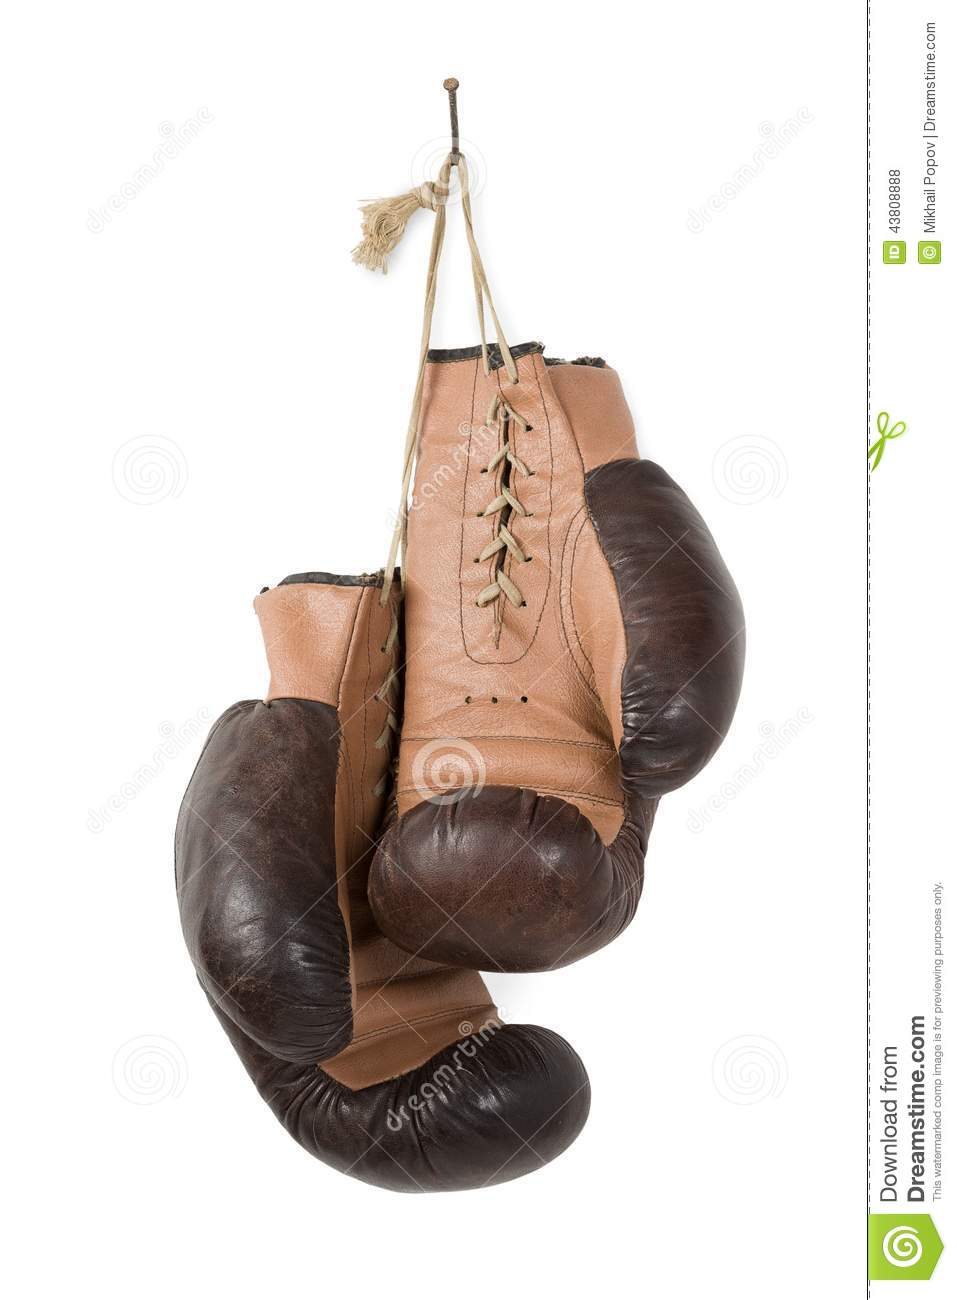 Boxing Gloves Hanging Wallpaper | www.imgkid.com - The ...